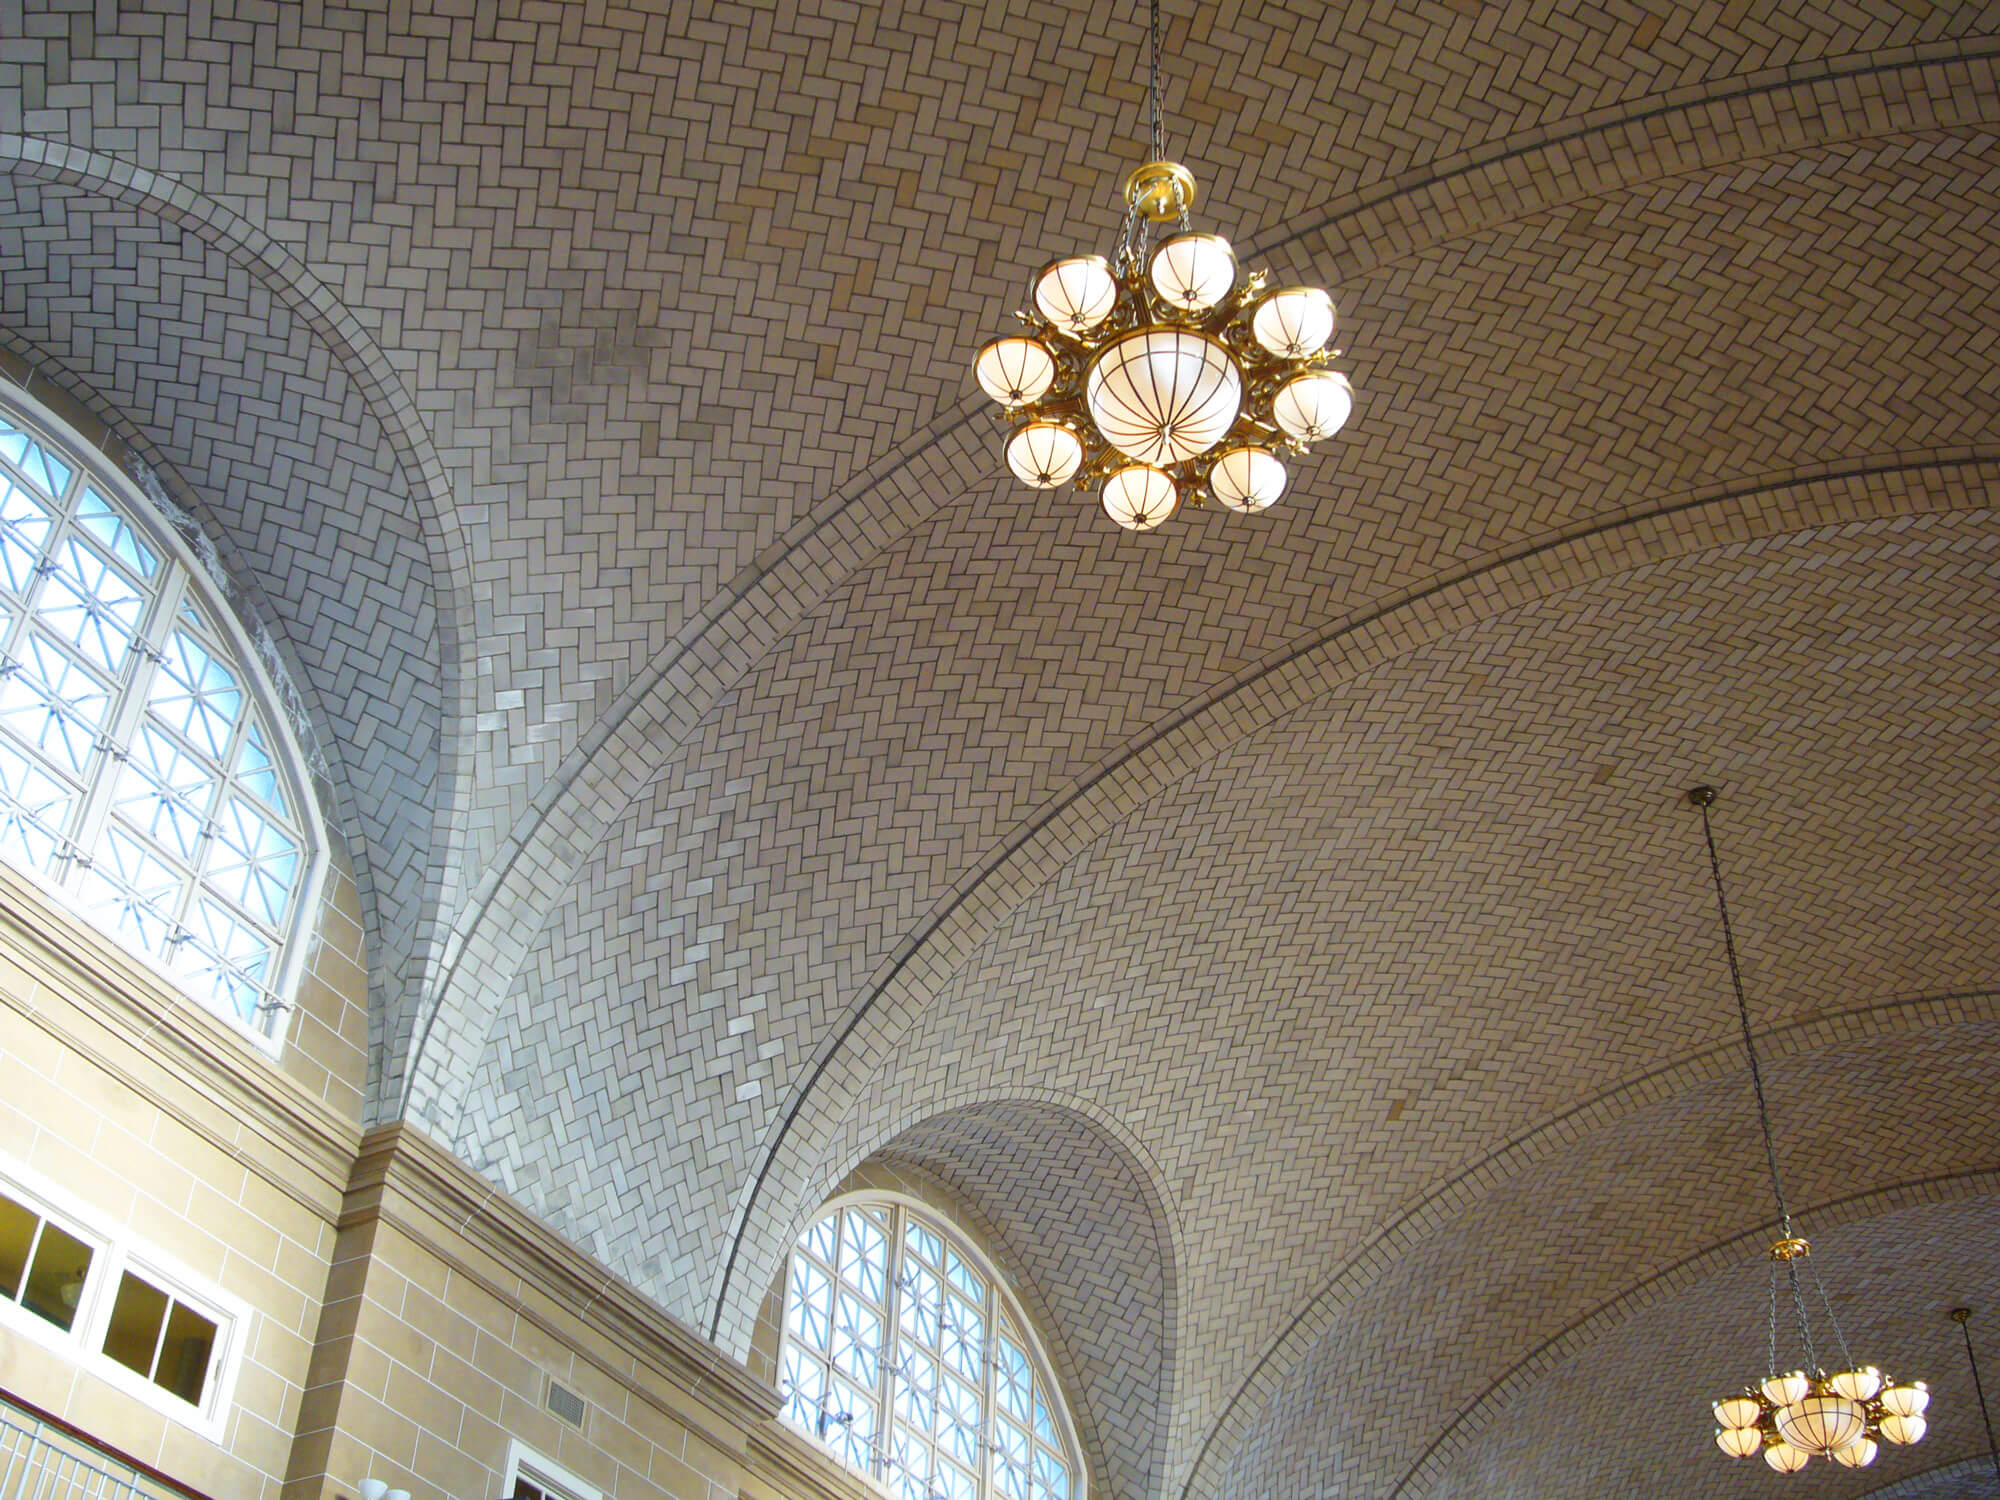 Ellis Island's Great Hall ceiling detail, with chandelier and arched windows